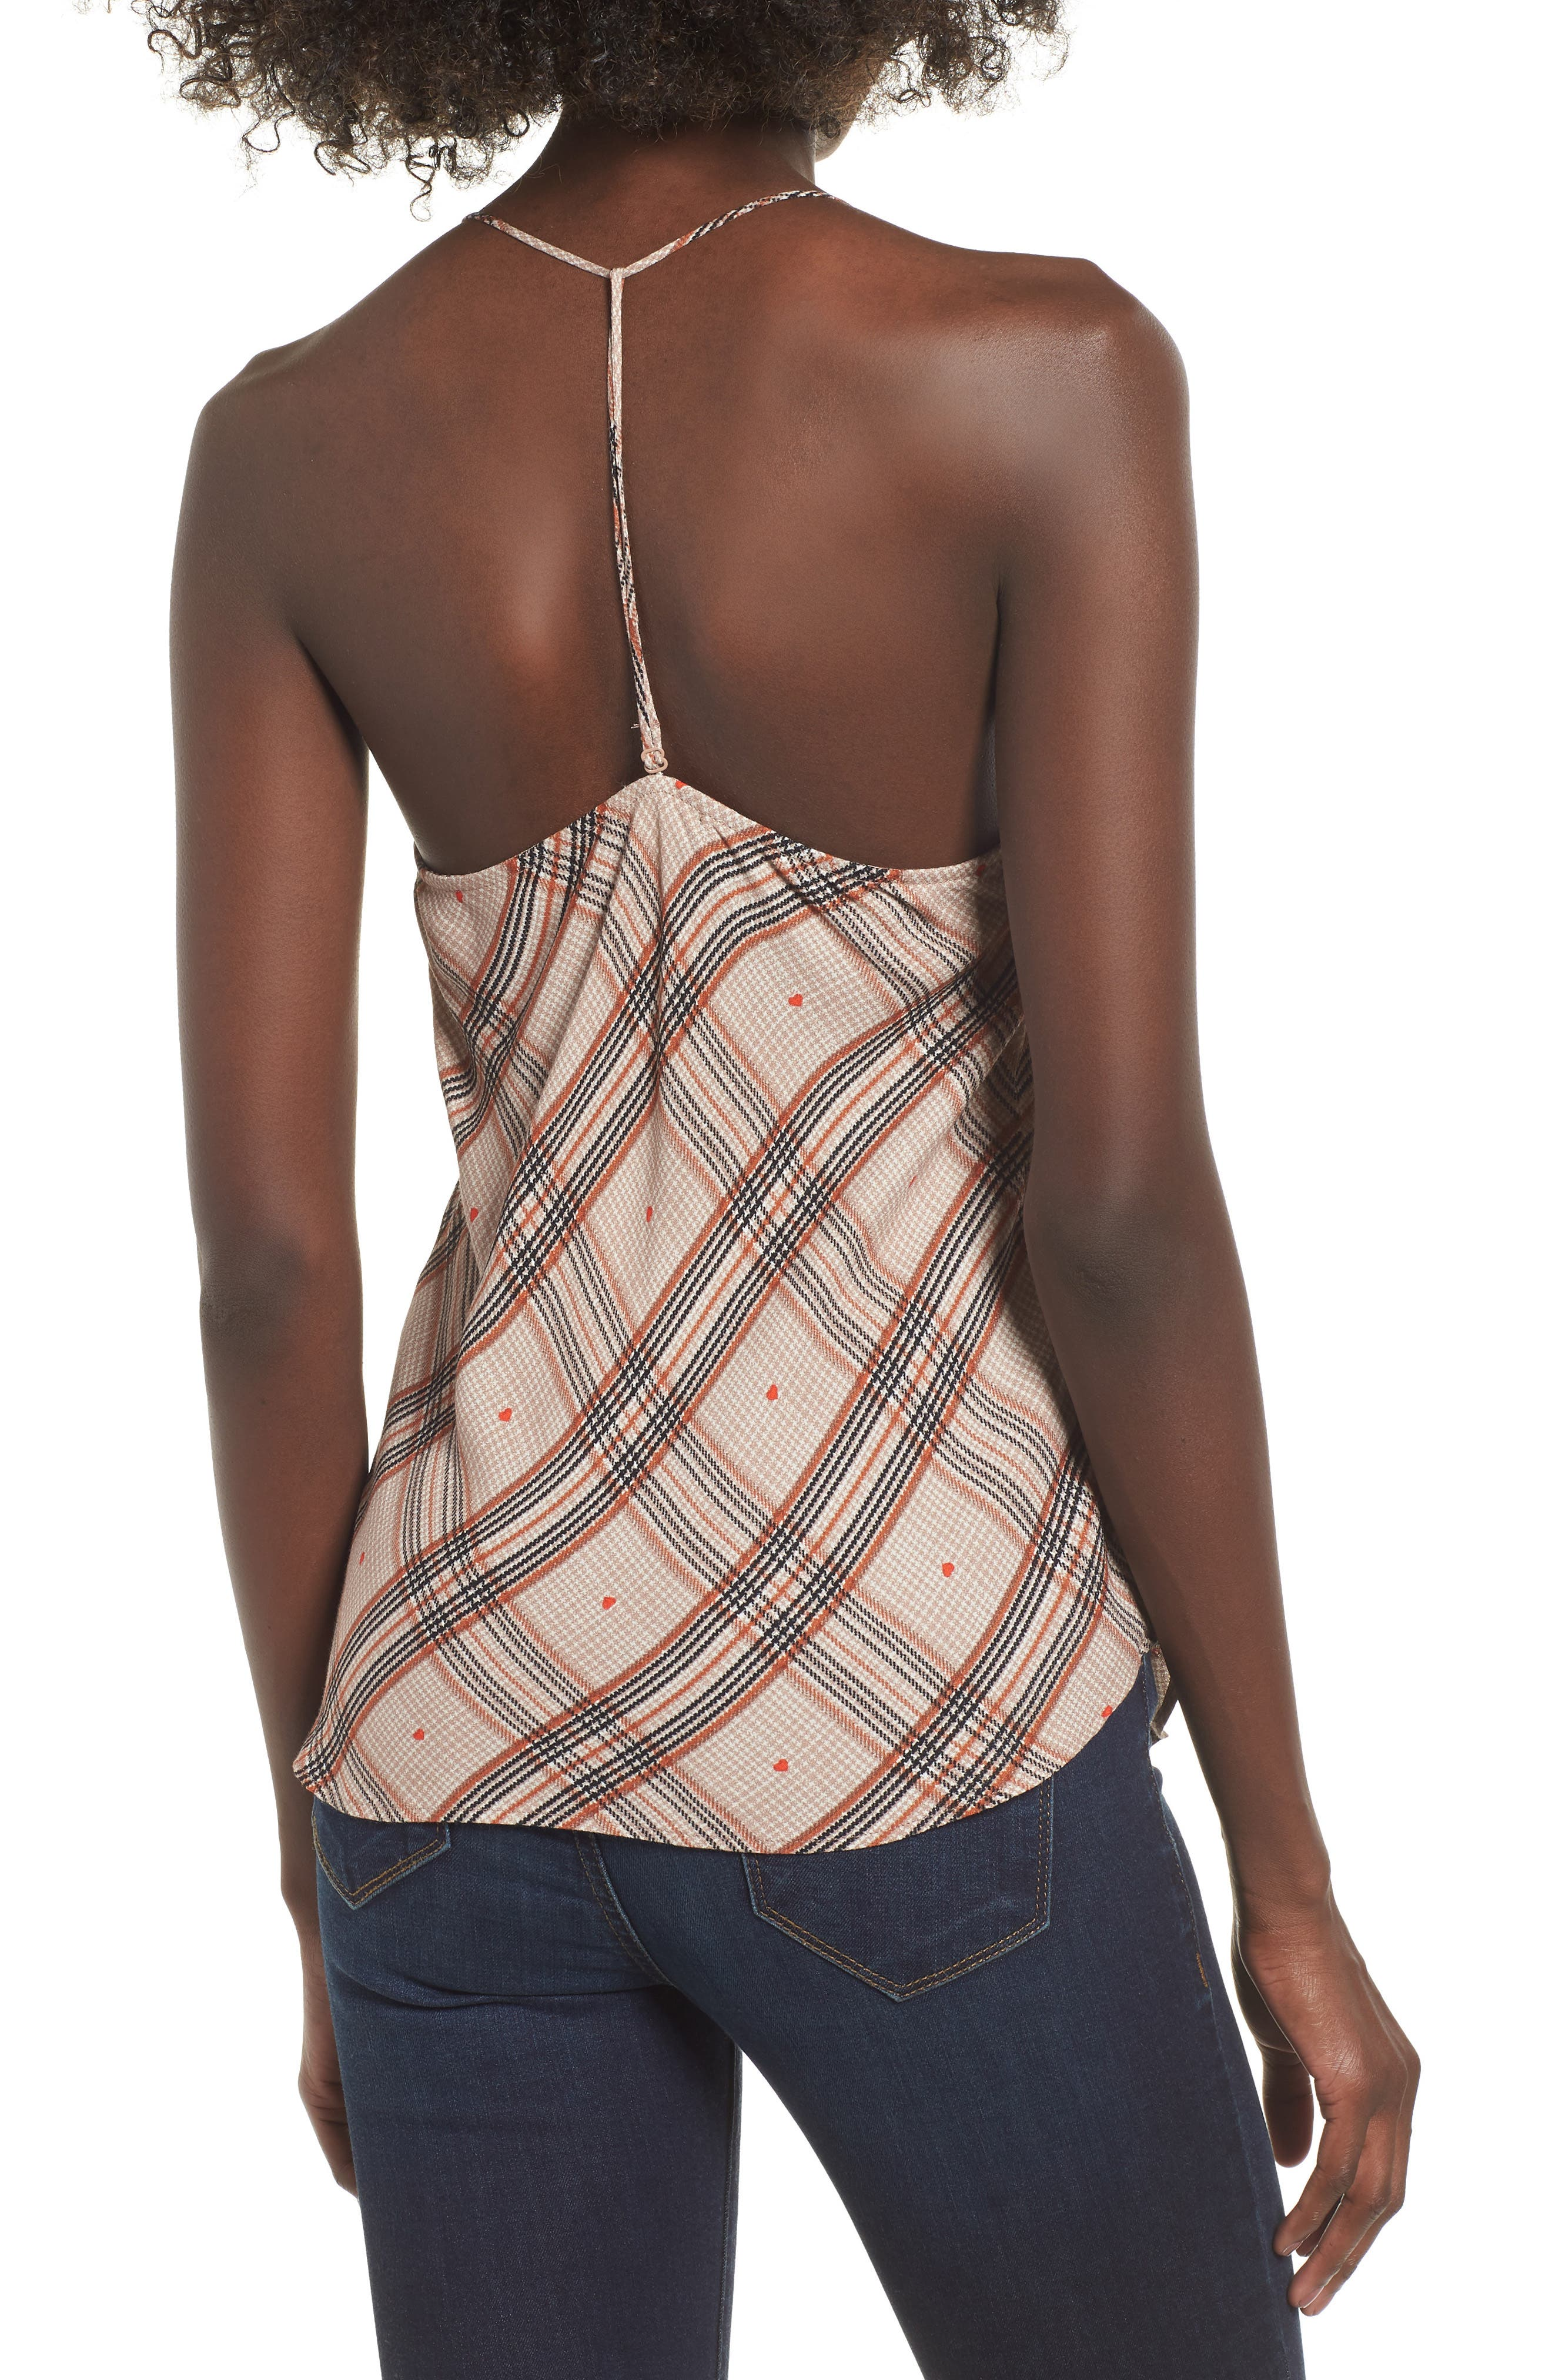 Finn T-Back Camisole,                             Alternate thumbnail 2, color,                             PLAID WITH HEART